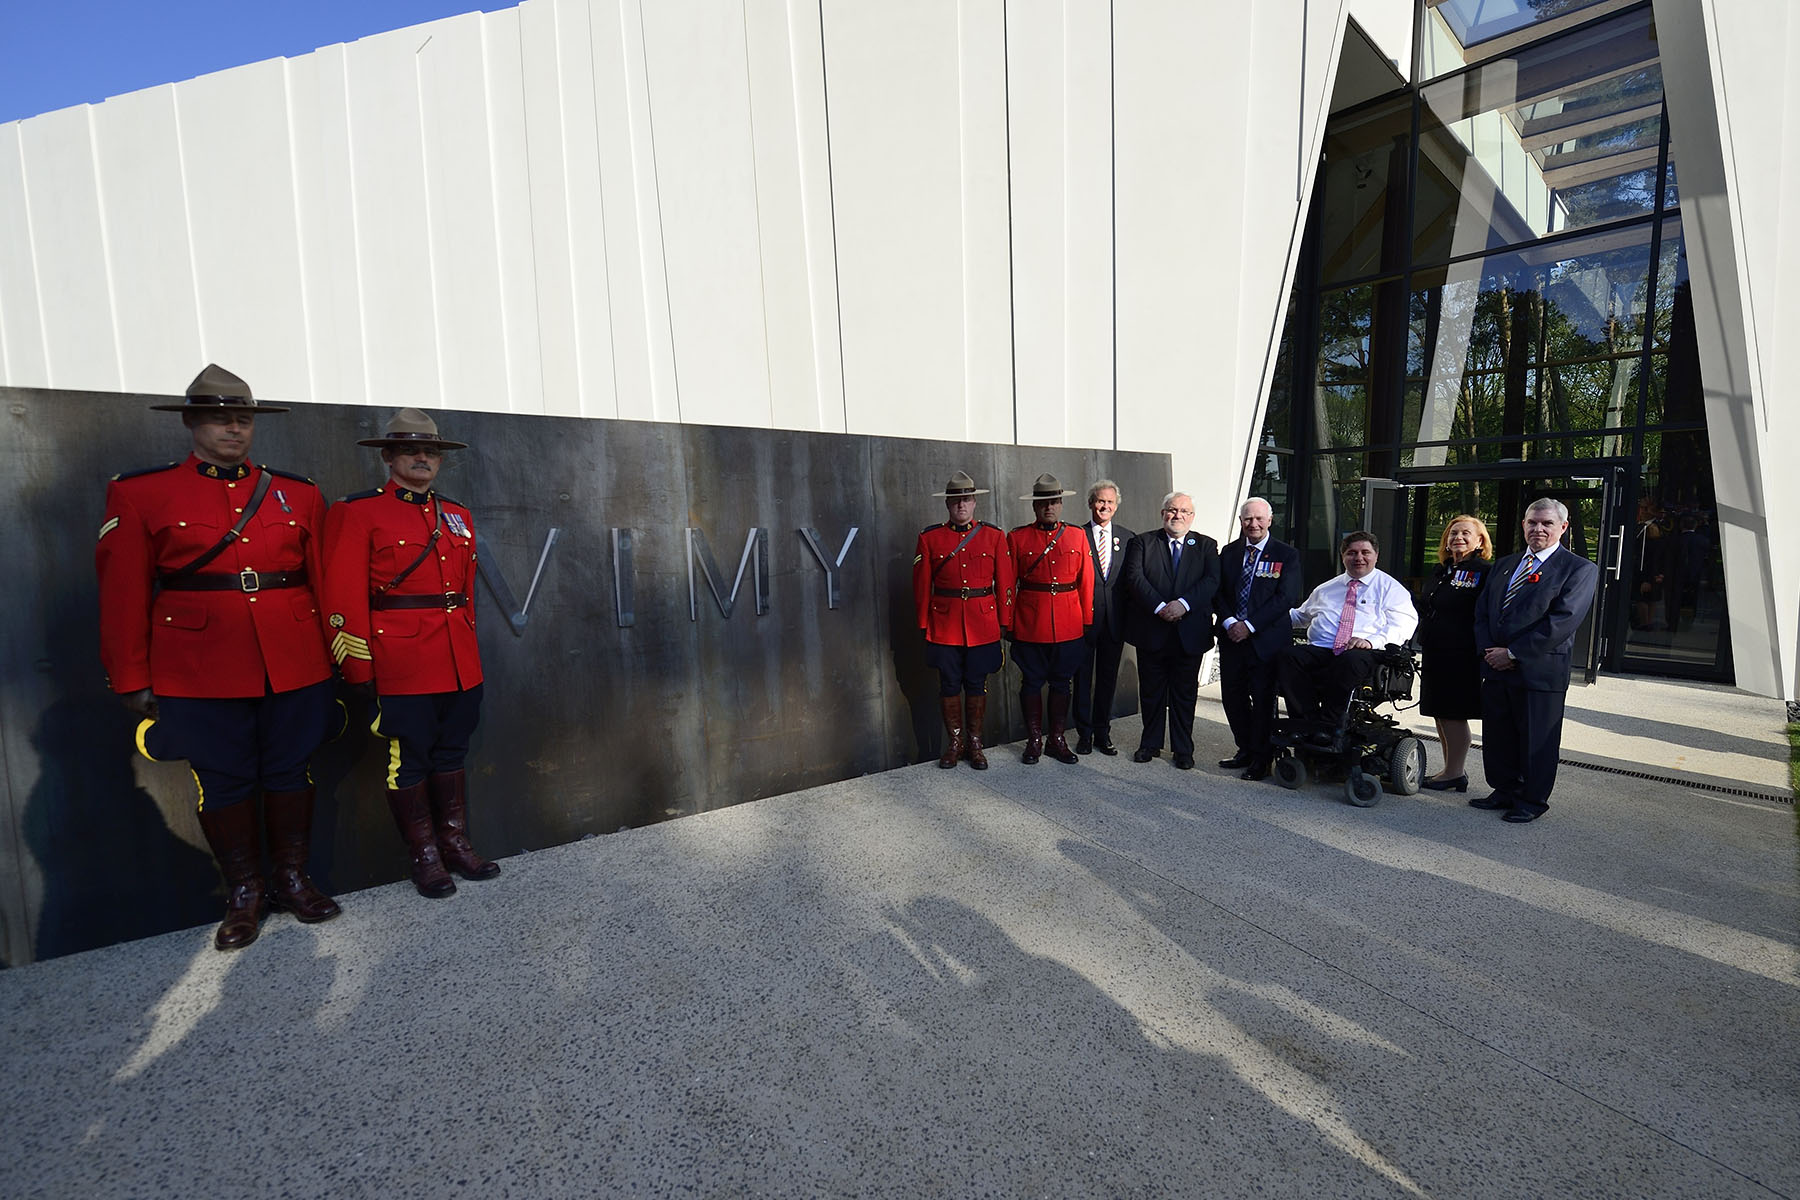 Their Excellencies attended the official opening of the new, state-of-the-art Visitor Education Centre at the Canadian National Vimy Memorial—a project of the Government of Canada supported by the Vimy Foundation.